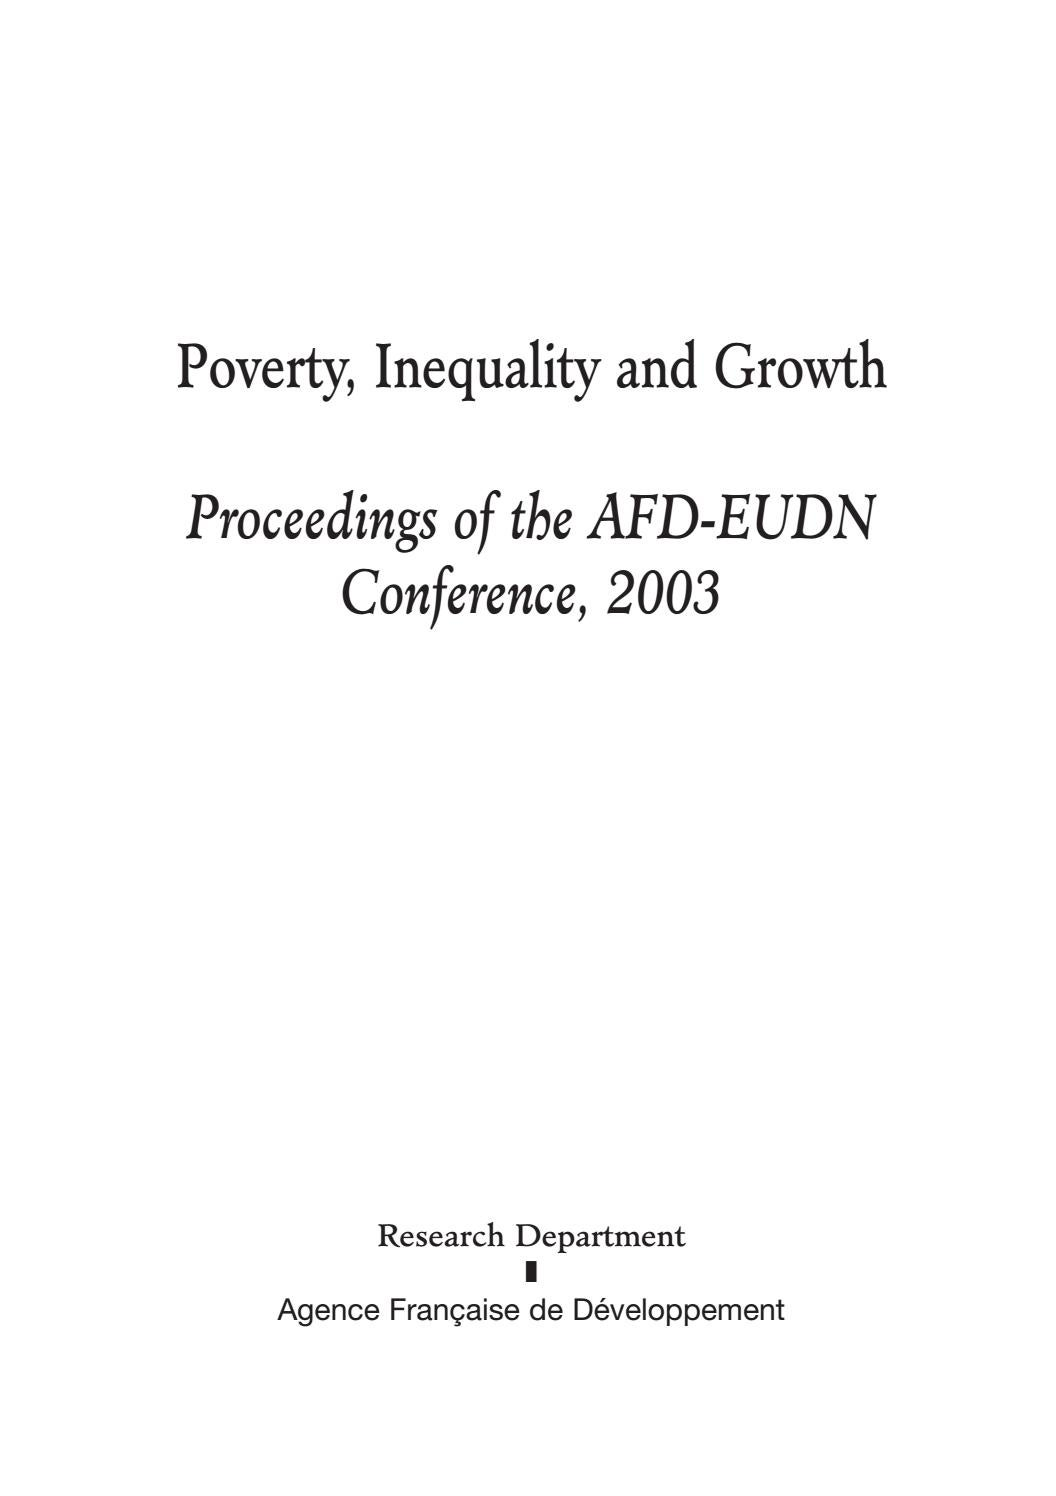 Dresser Une Table À L Anglaise poverty, inequality and growth proceeding of the afd-eudn